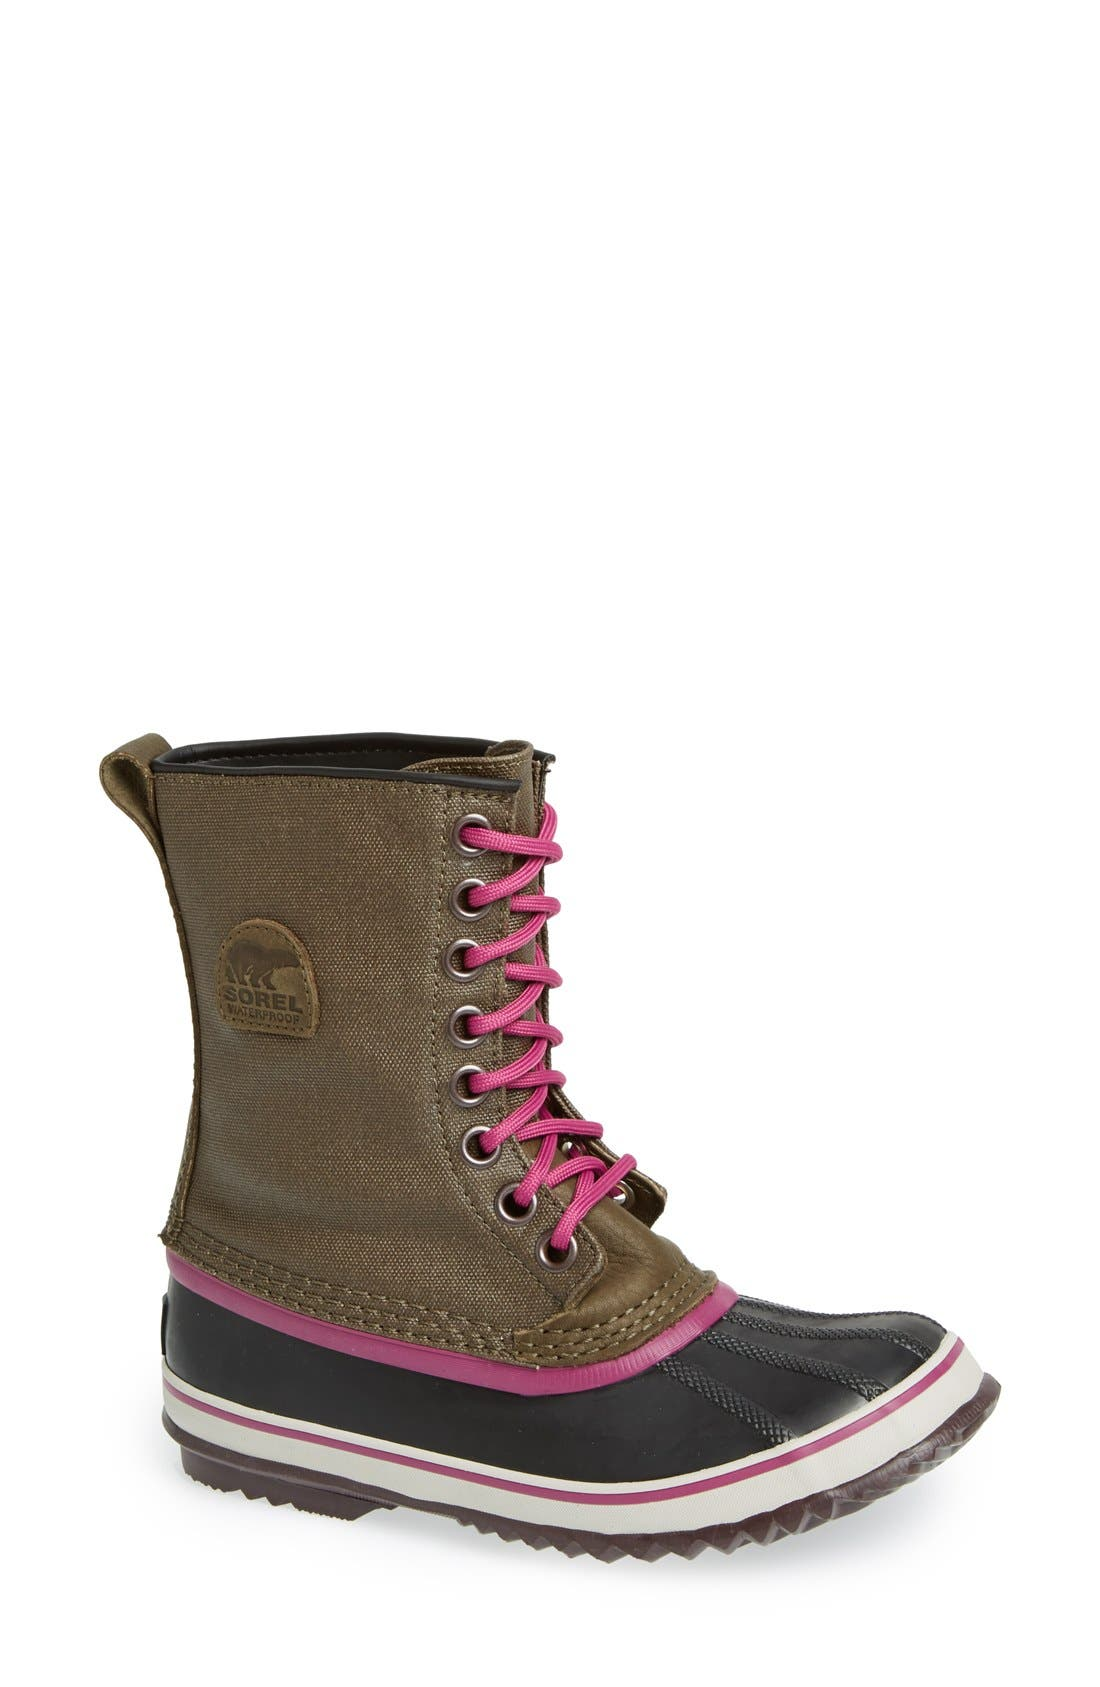 '1964 Premium' Waterproof Boot,                         Main,                         color, Peatmoss